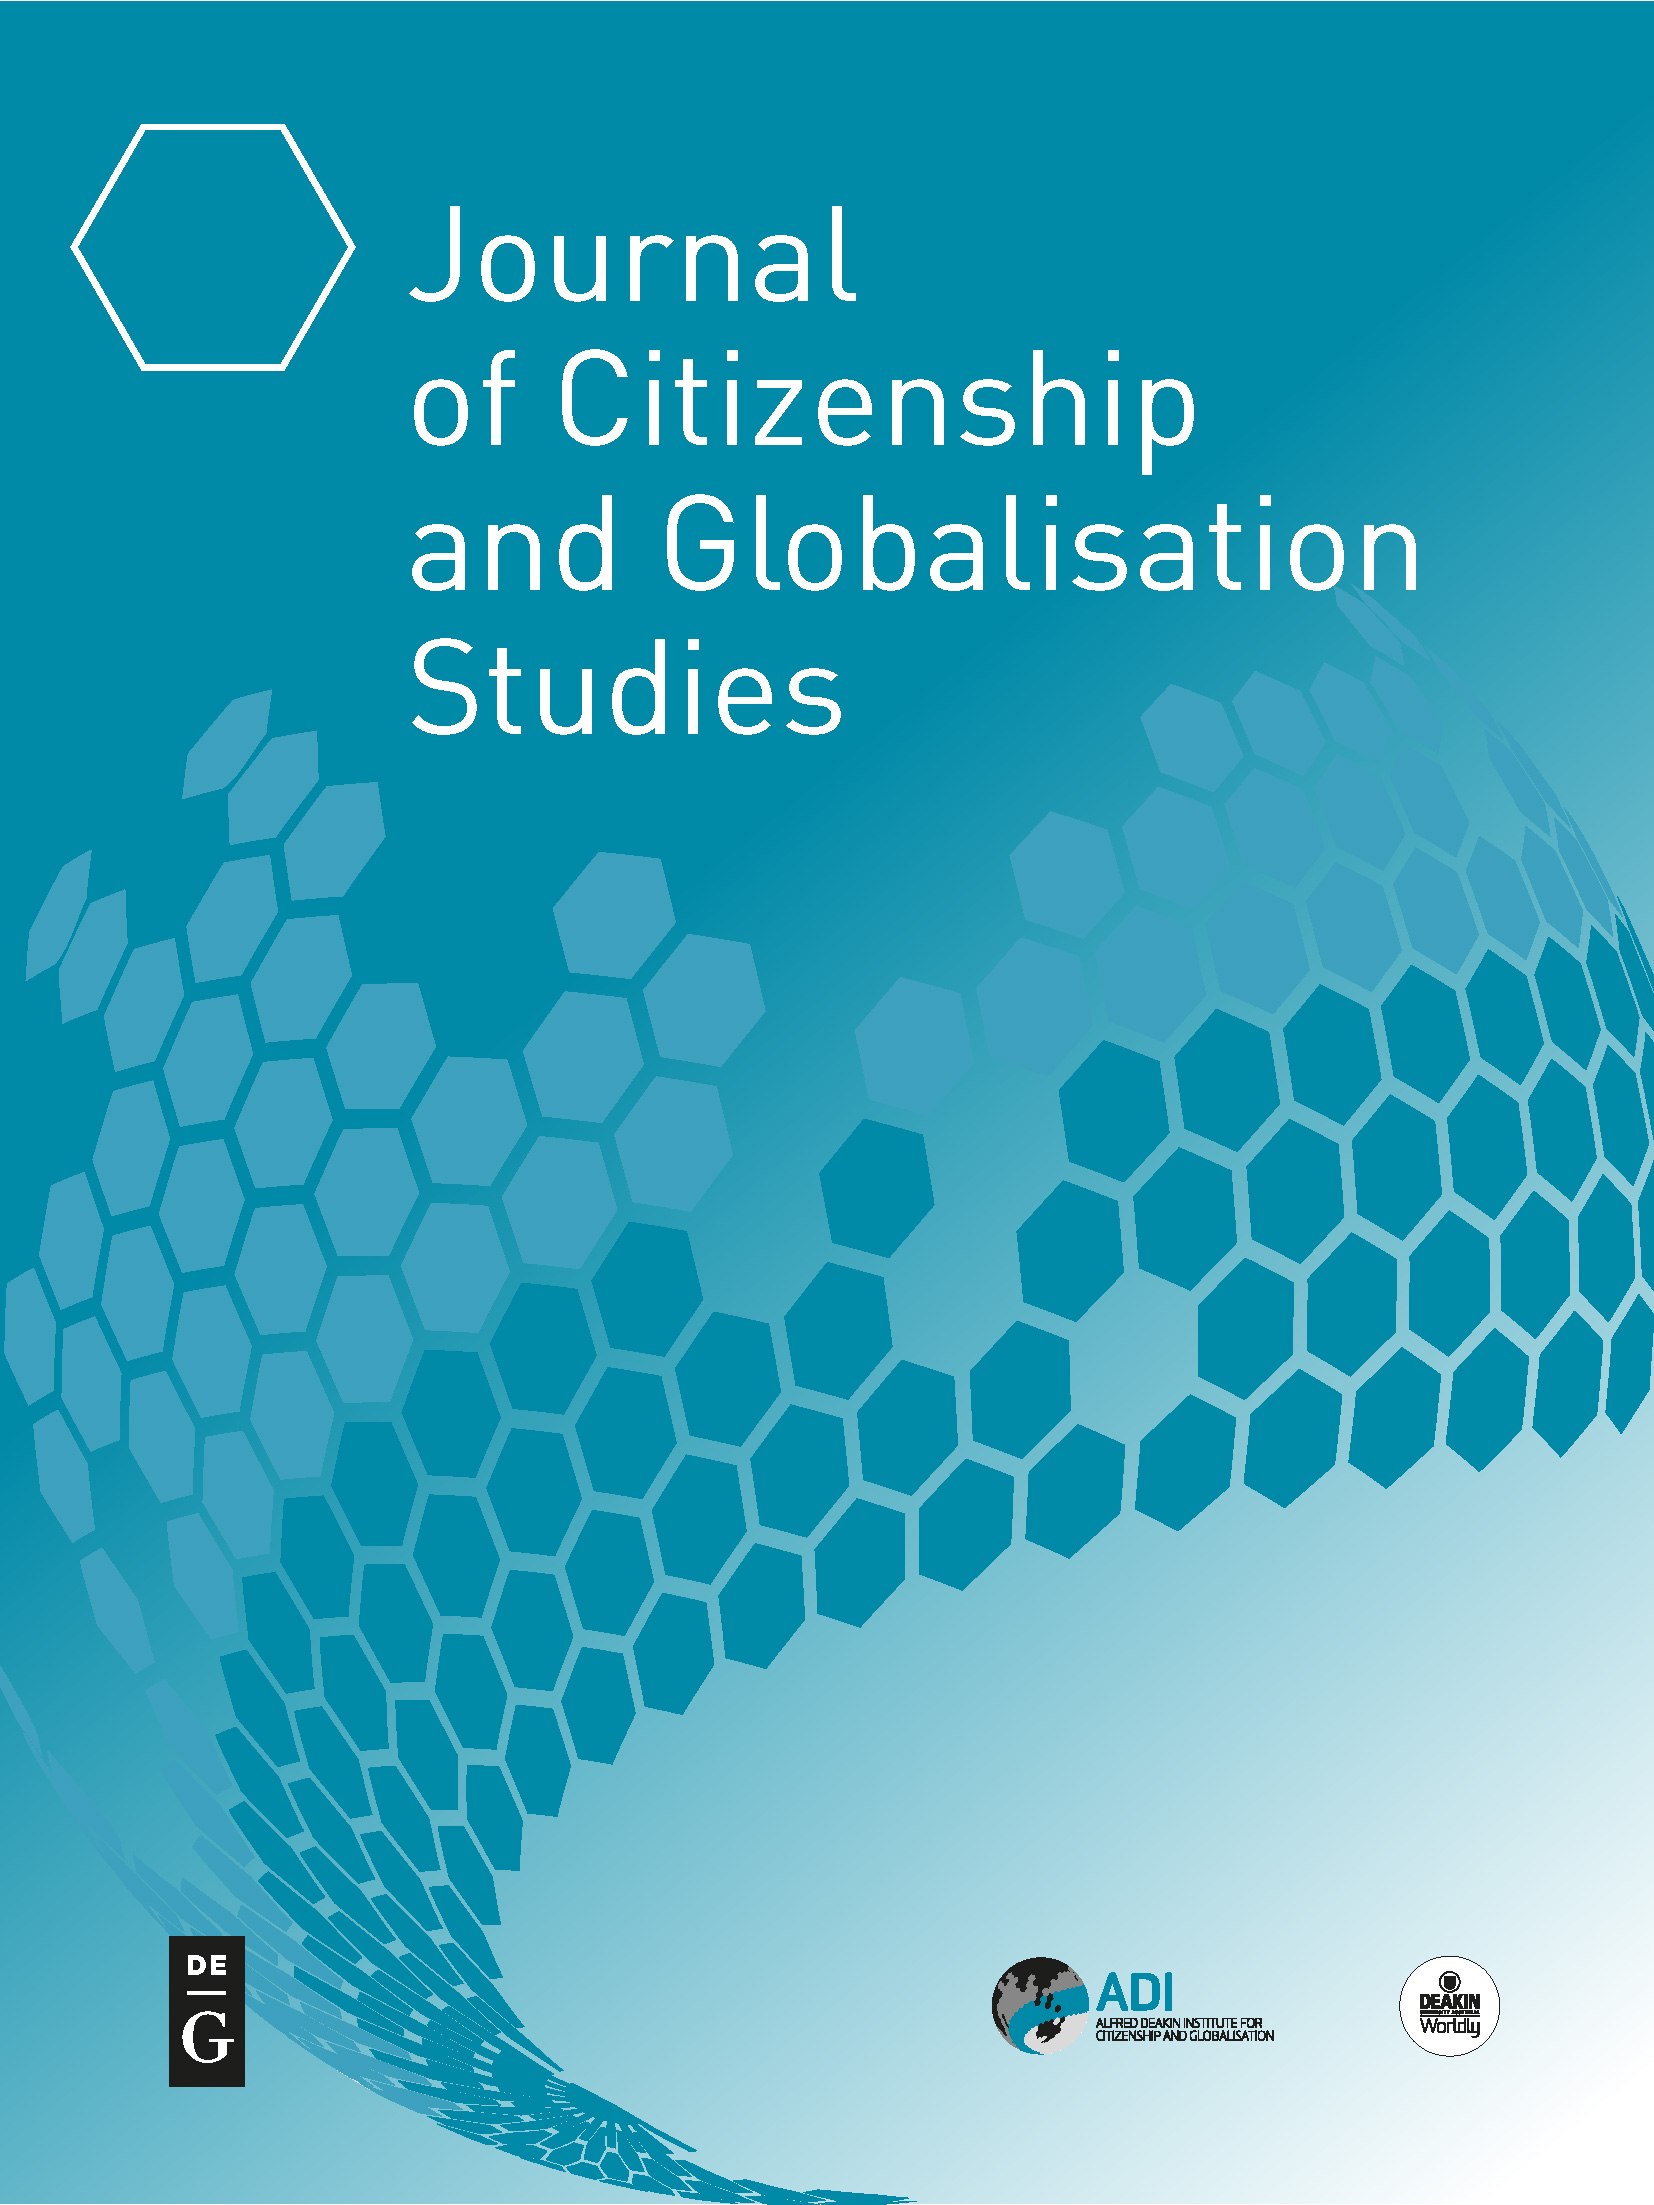 Journals - In addition to the Institute's open-access 'Journal of Citizenship and Globalisation Studies' (JCGS), we are affiliated with a number of high quality academic journals.